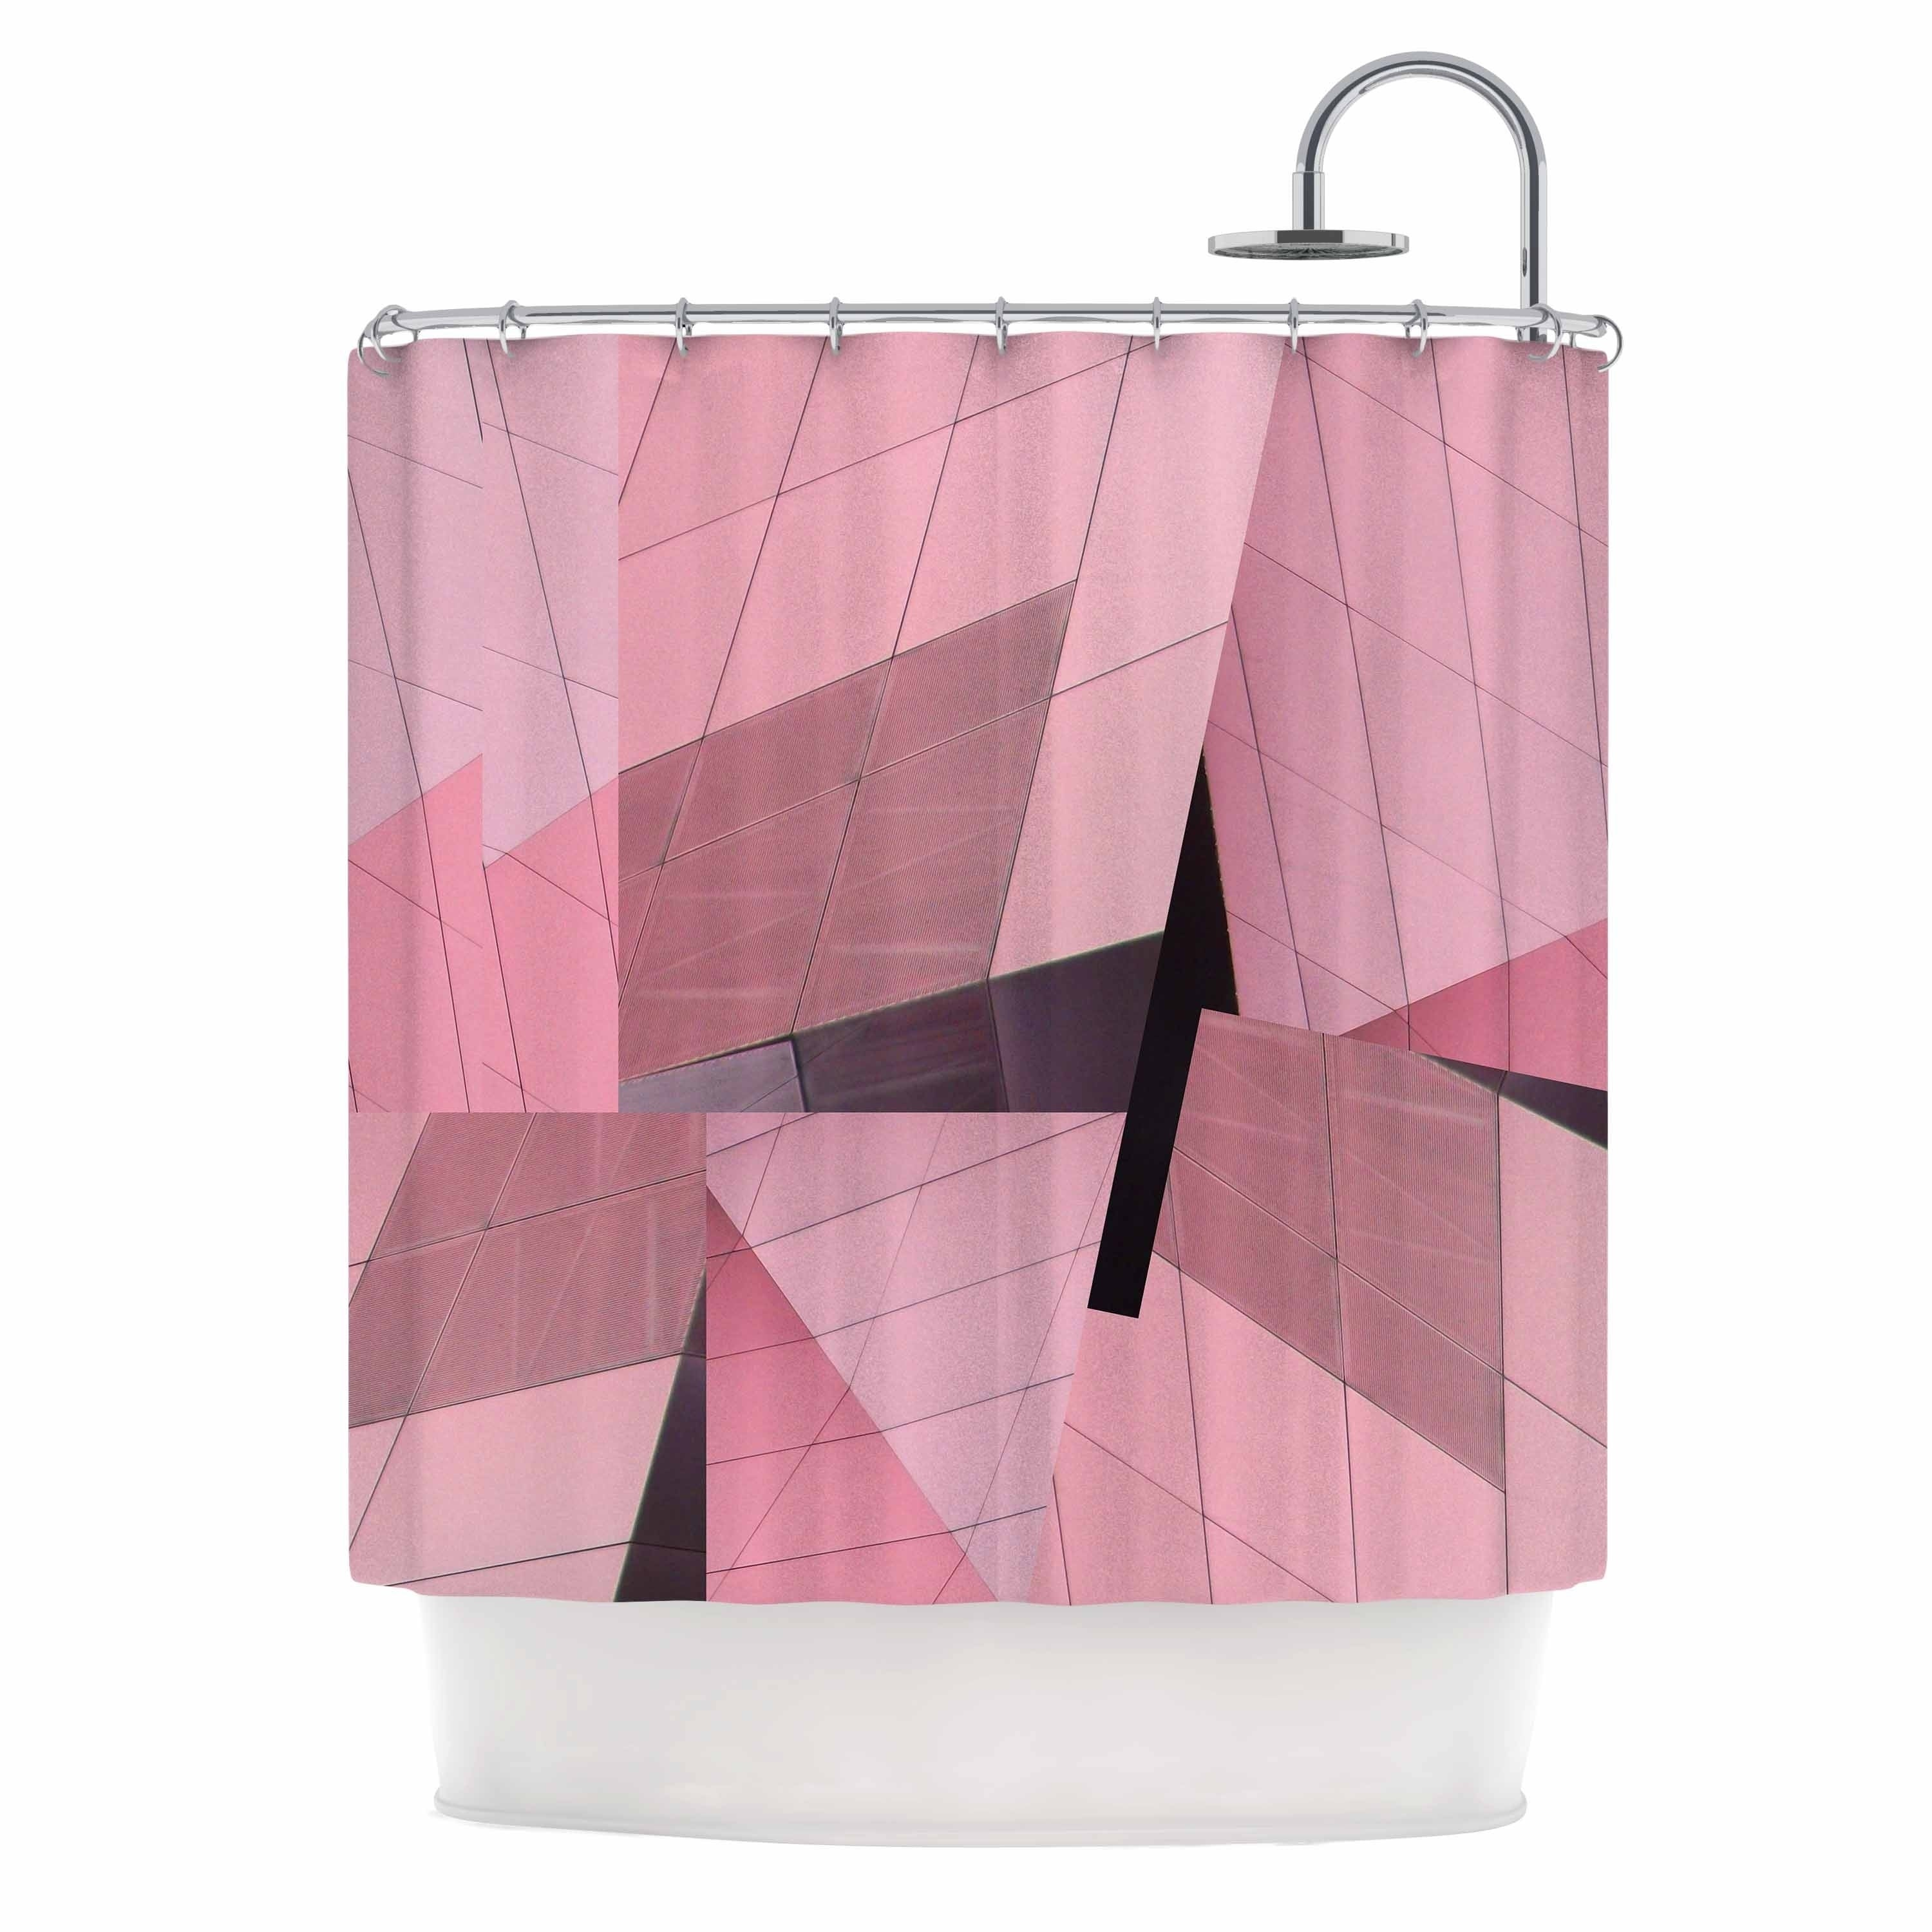 "Tiny September "" Pink Flamingo"" Shower Curtain Pink Polyester - Diamond Home USA"